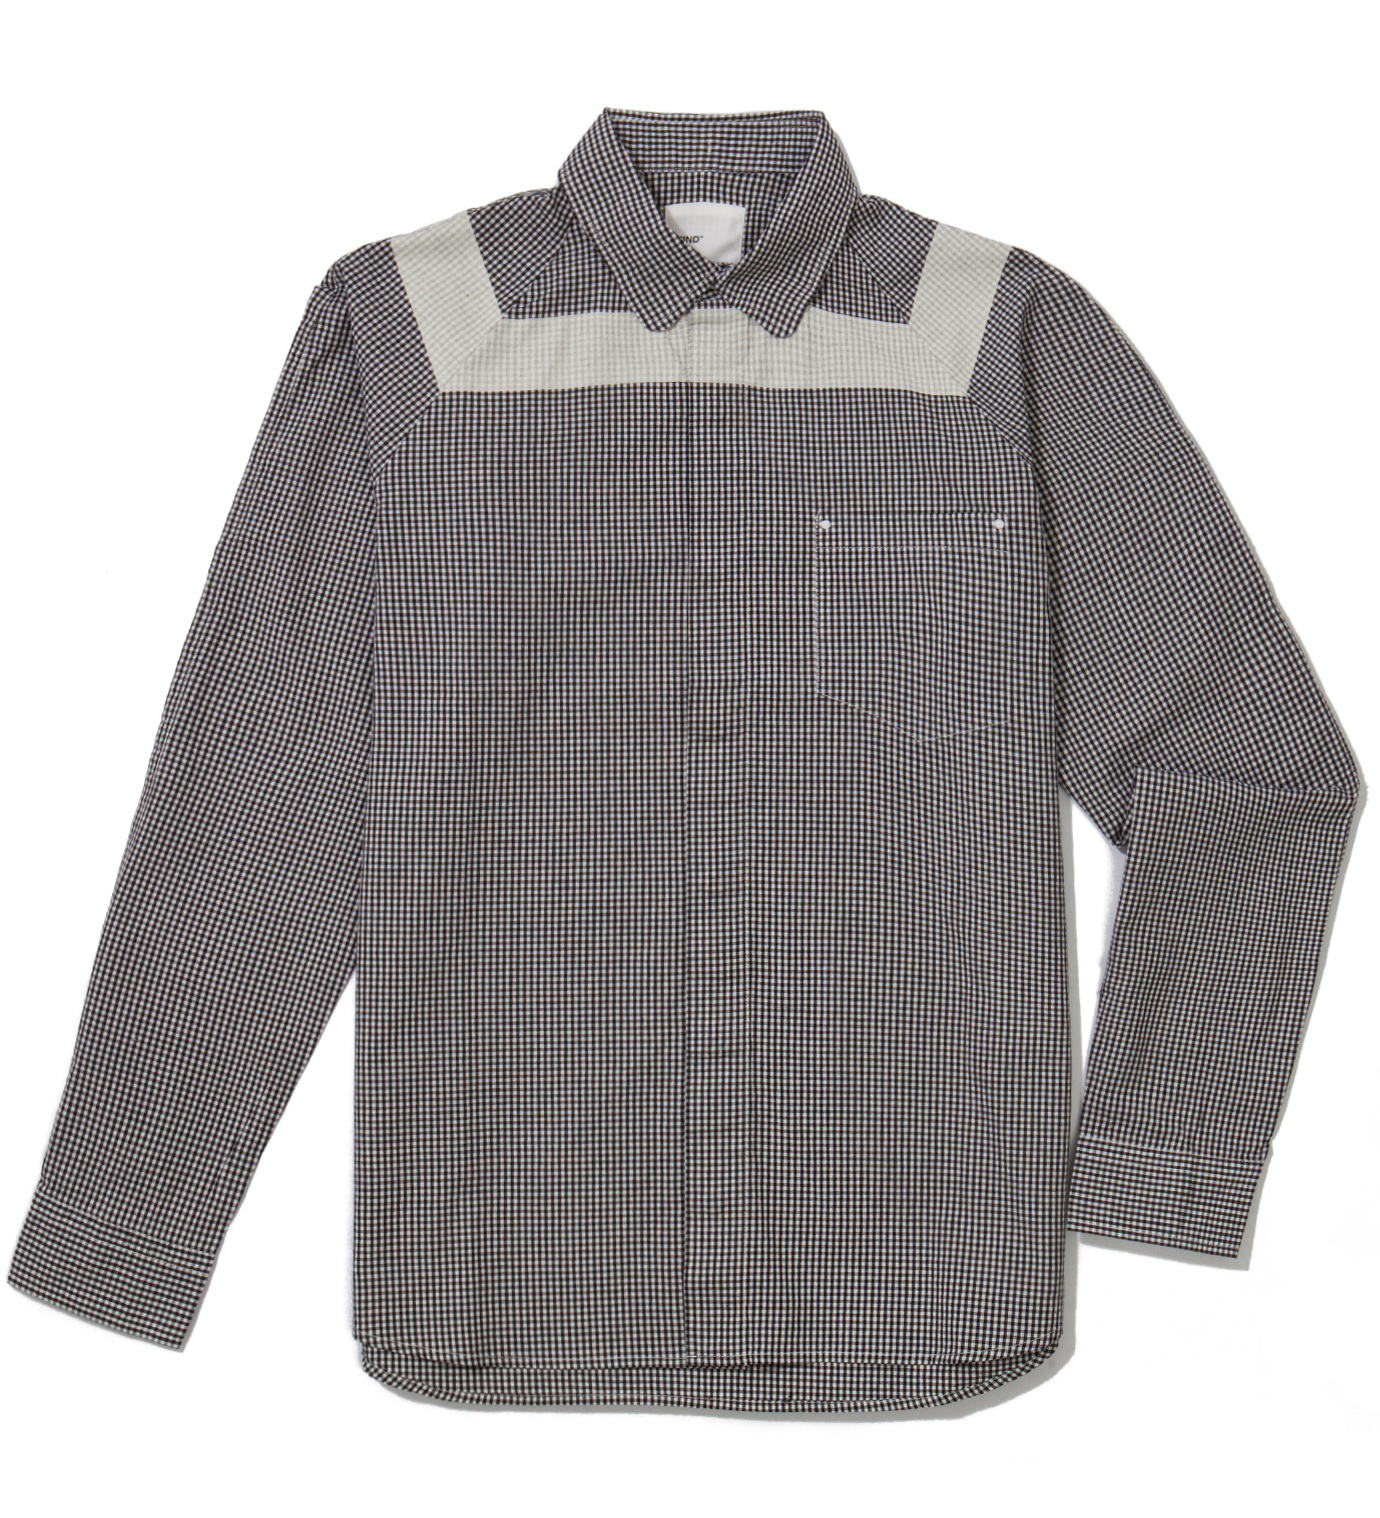 IMIND Black Gingham Shirt